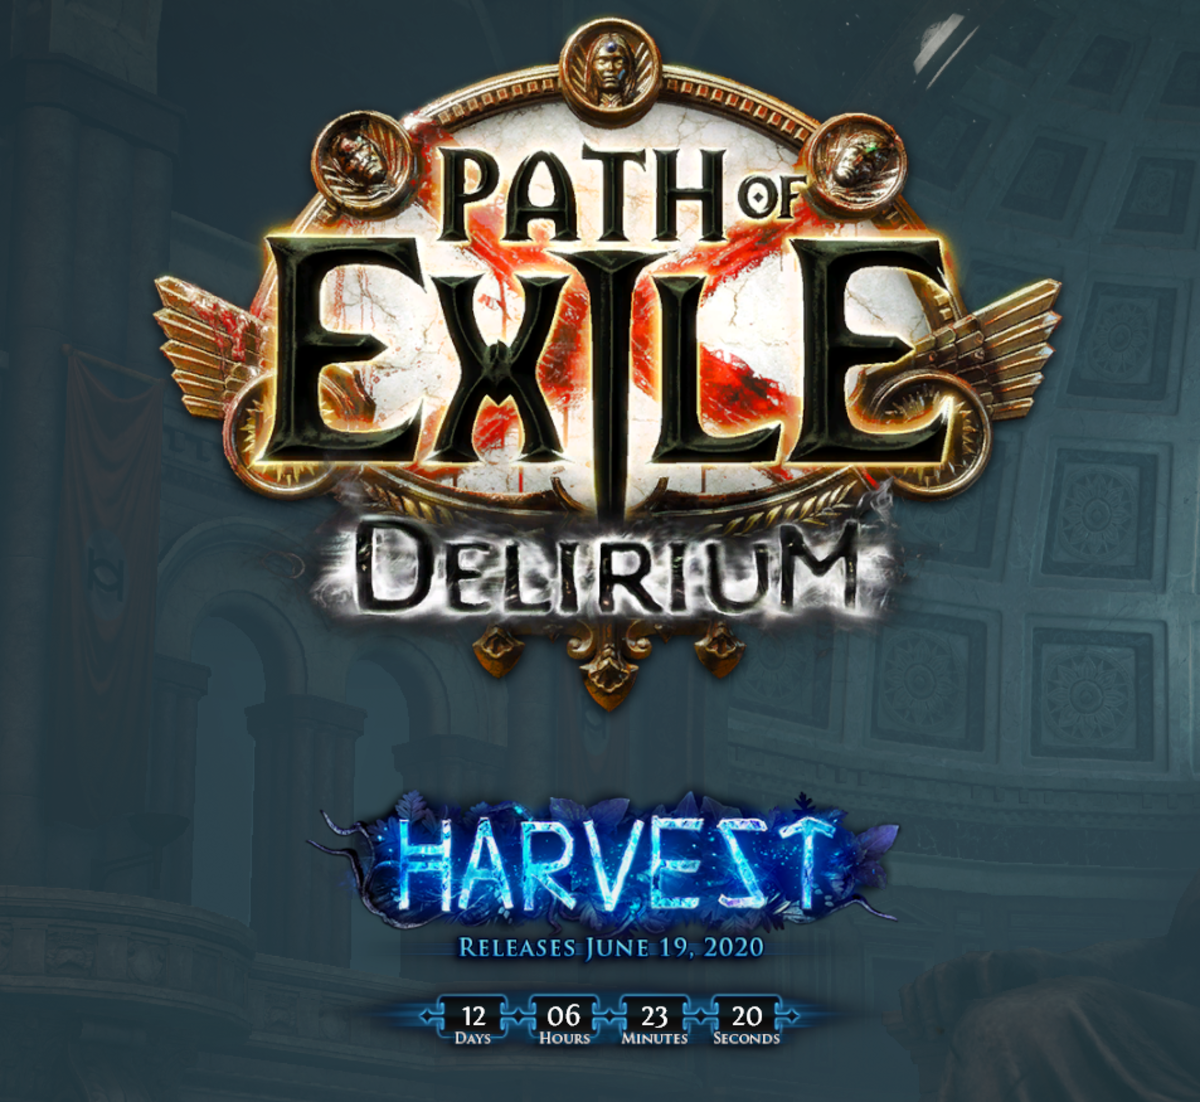 What's great about Path of Exile is that new content is frequently added to the game.